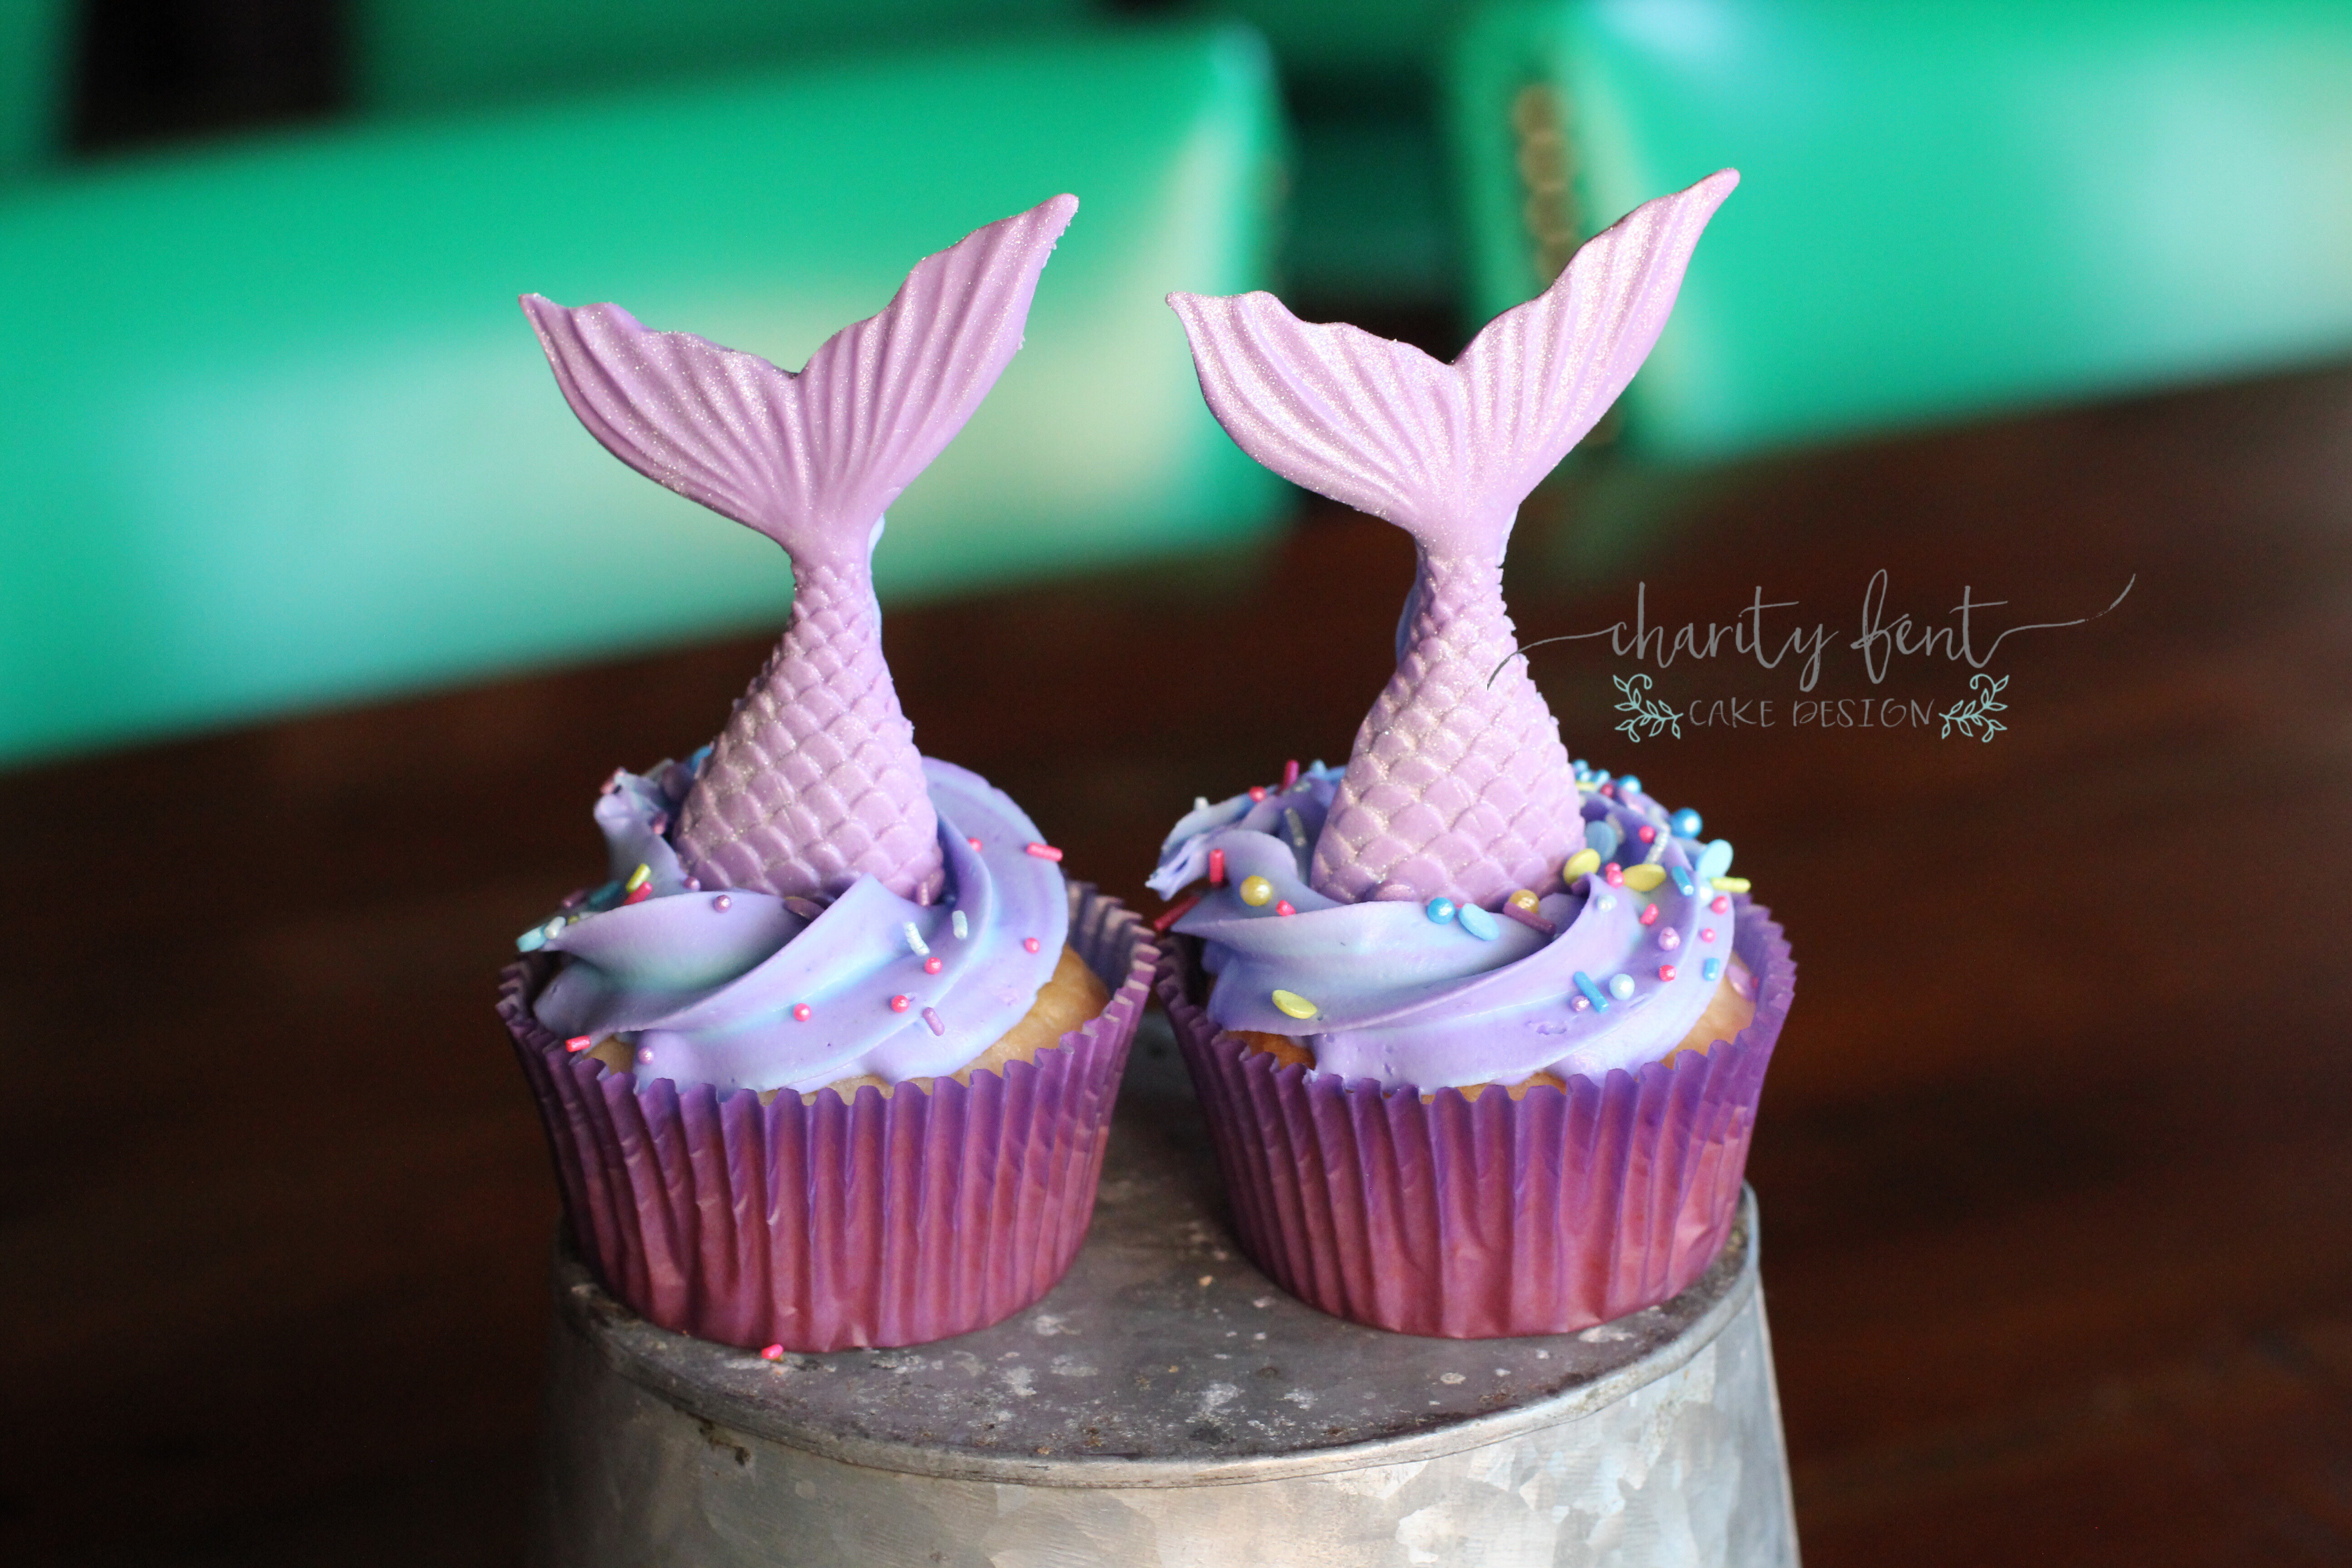 Mermaid Cupcakes 187 Charity Fent Cake Design